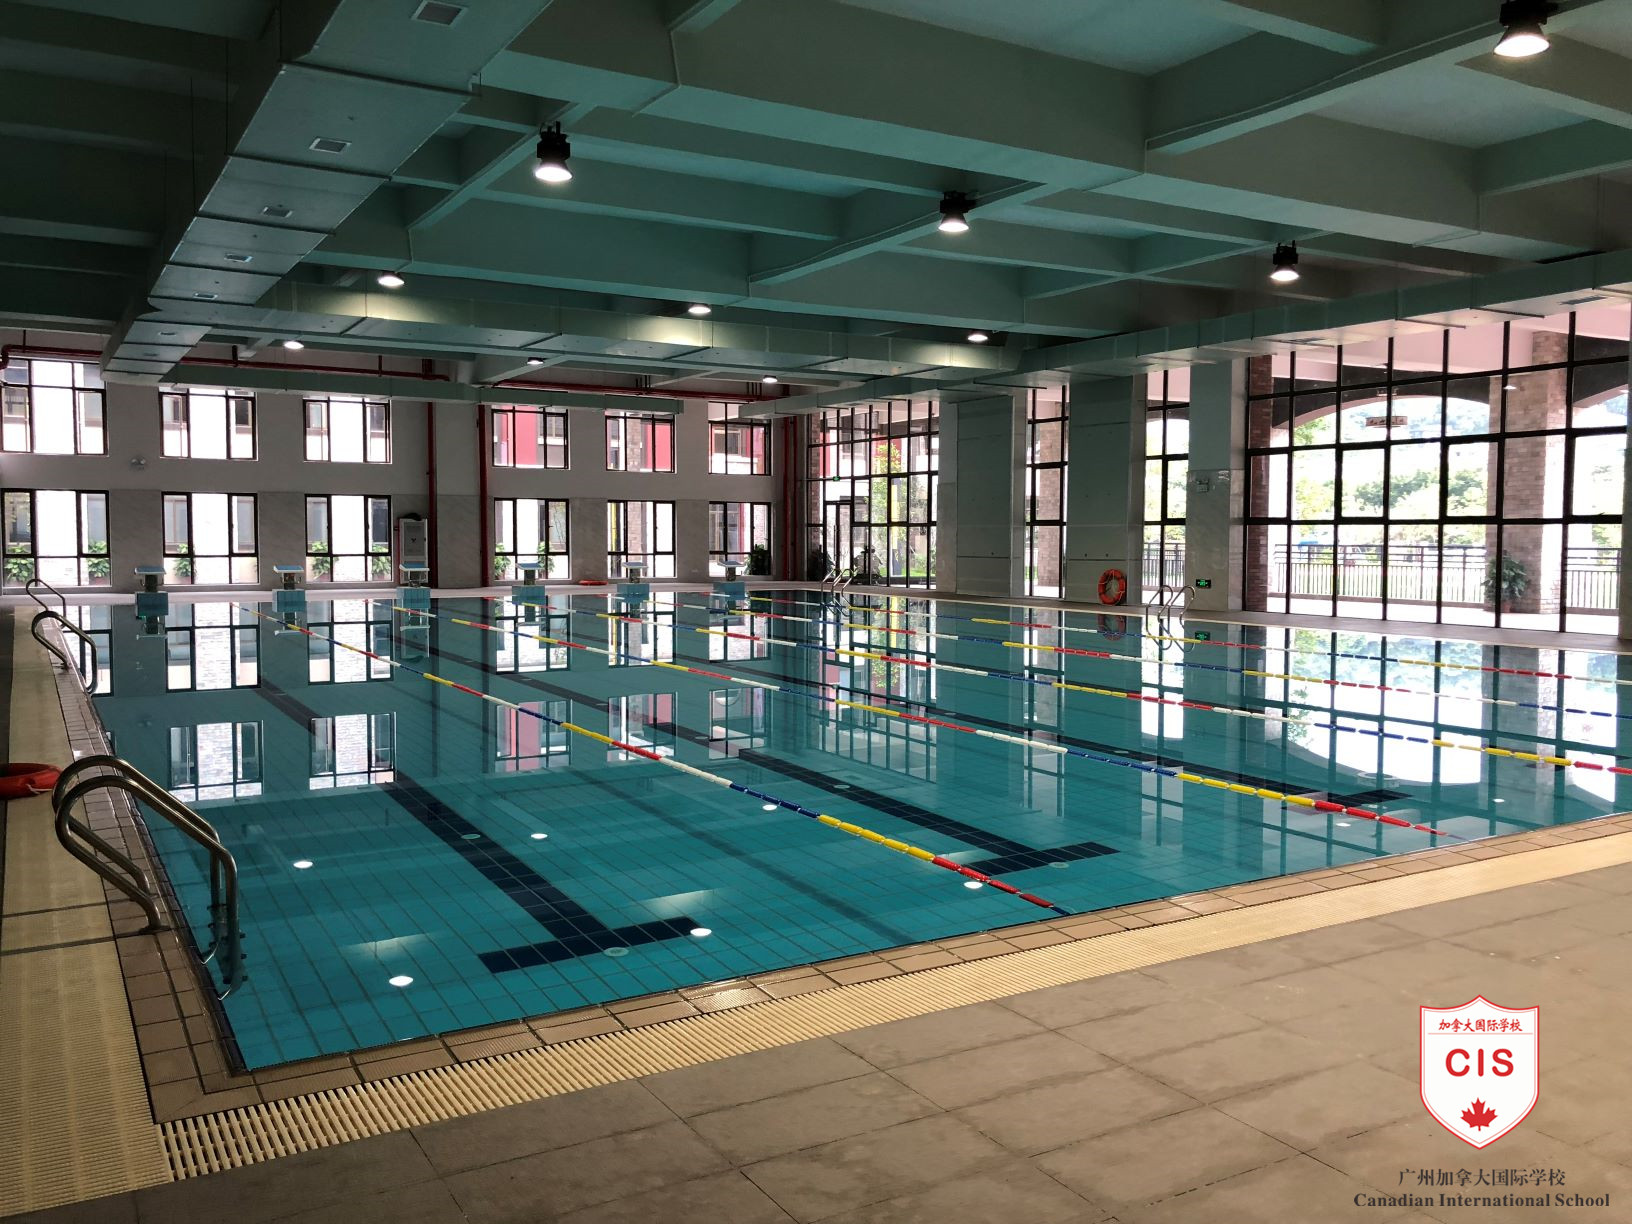 File:CIS Indoor Swimming Pool.jpg - Wikimedia Commons